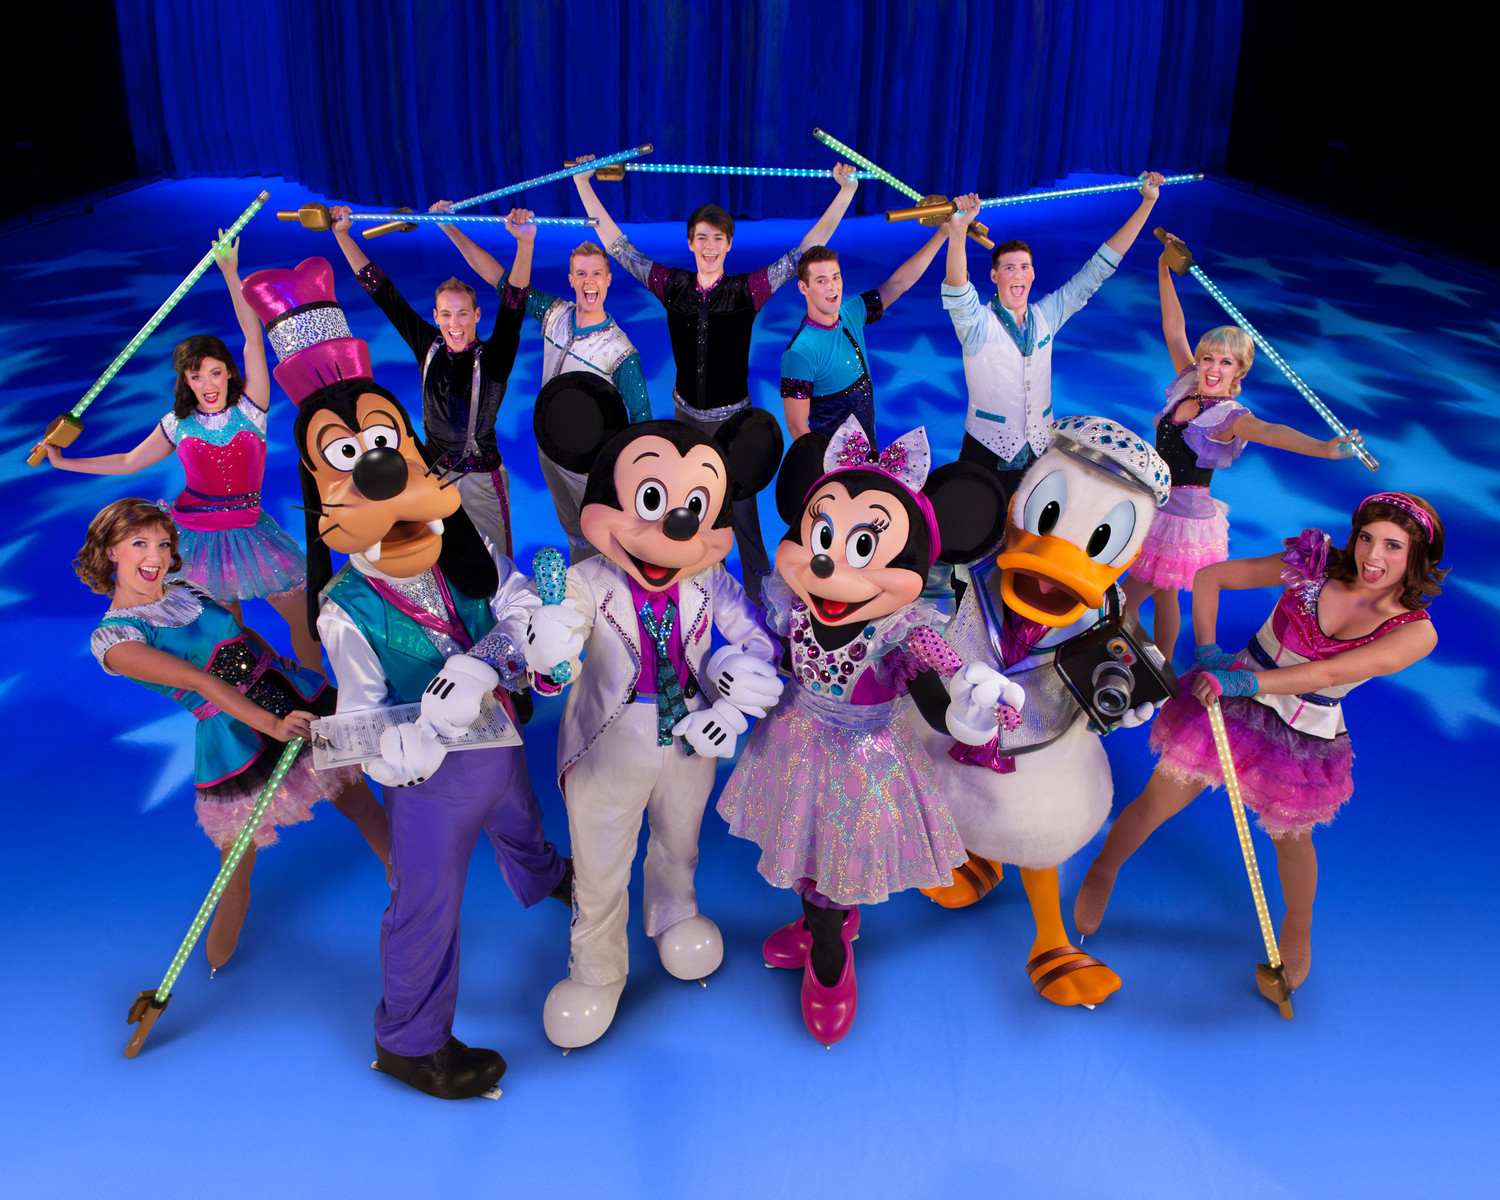 Mickey and his pals, accompanied by the Rock Stars, lead the way in the latest Disney on Ice extravaganza.